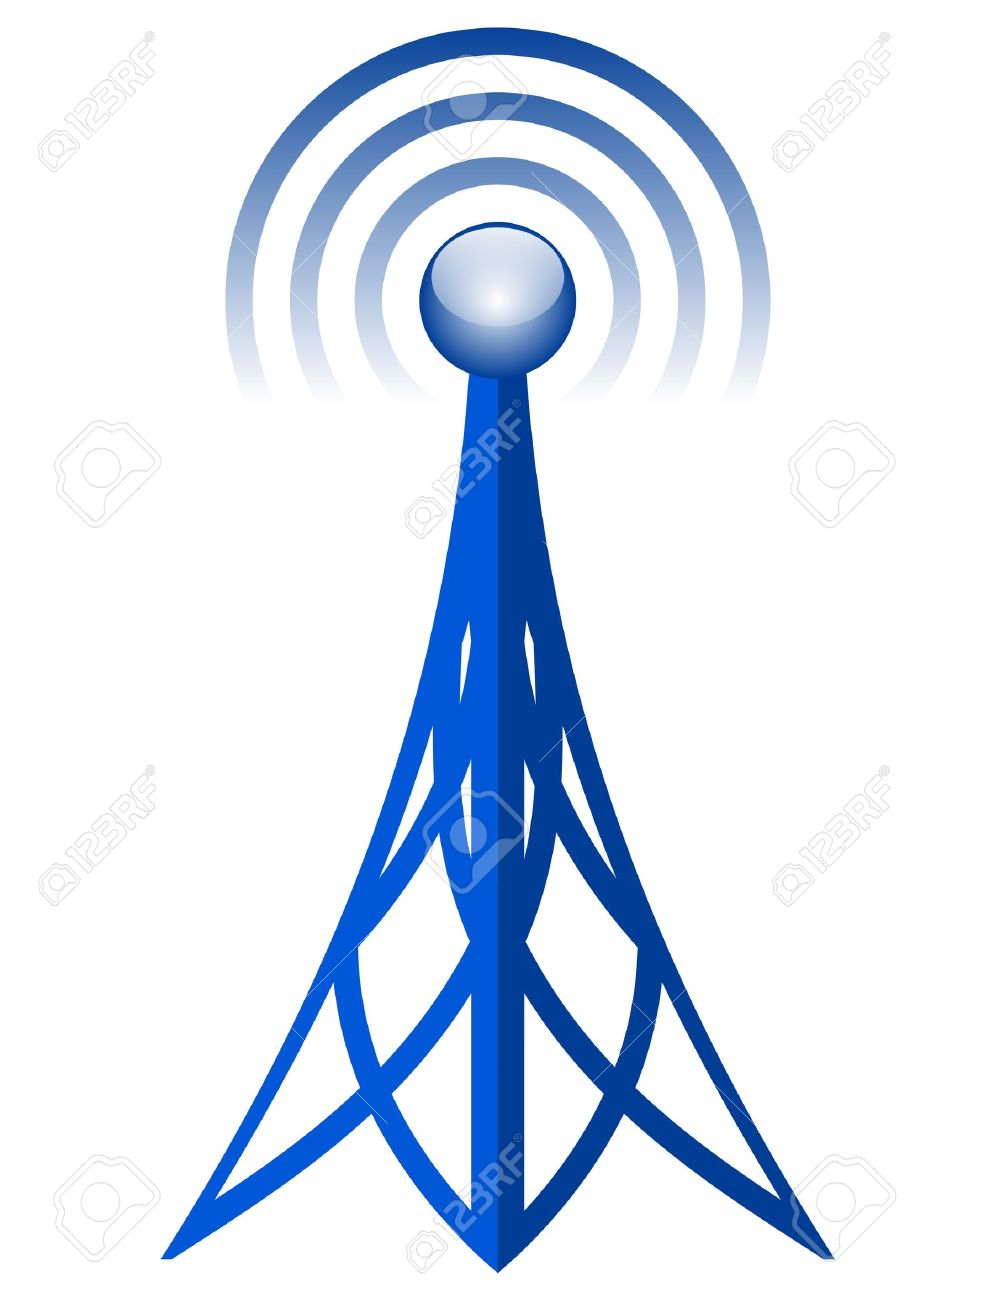 Broadcast Tower Vector Vector - Vector antenna icon